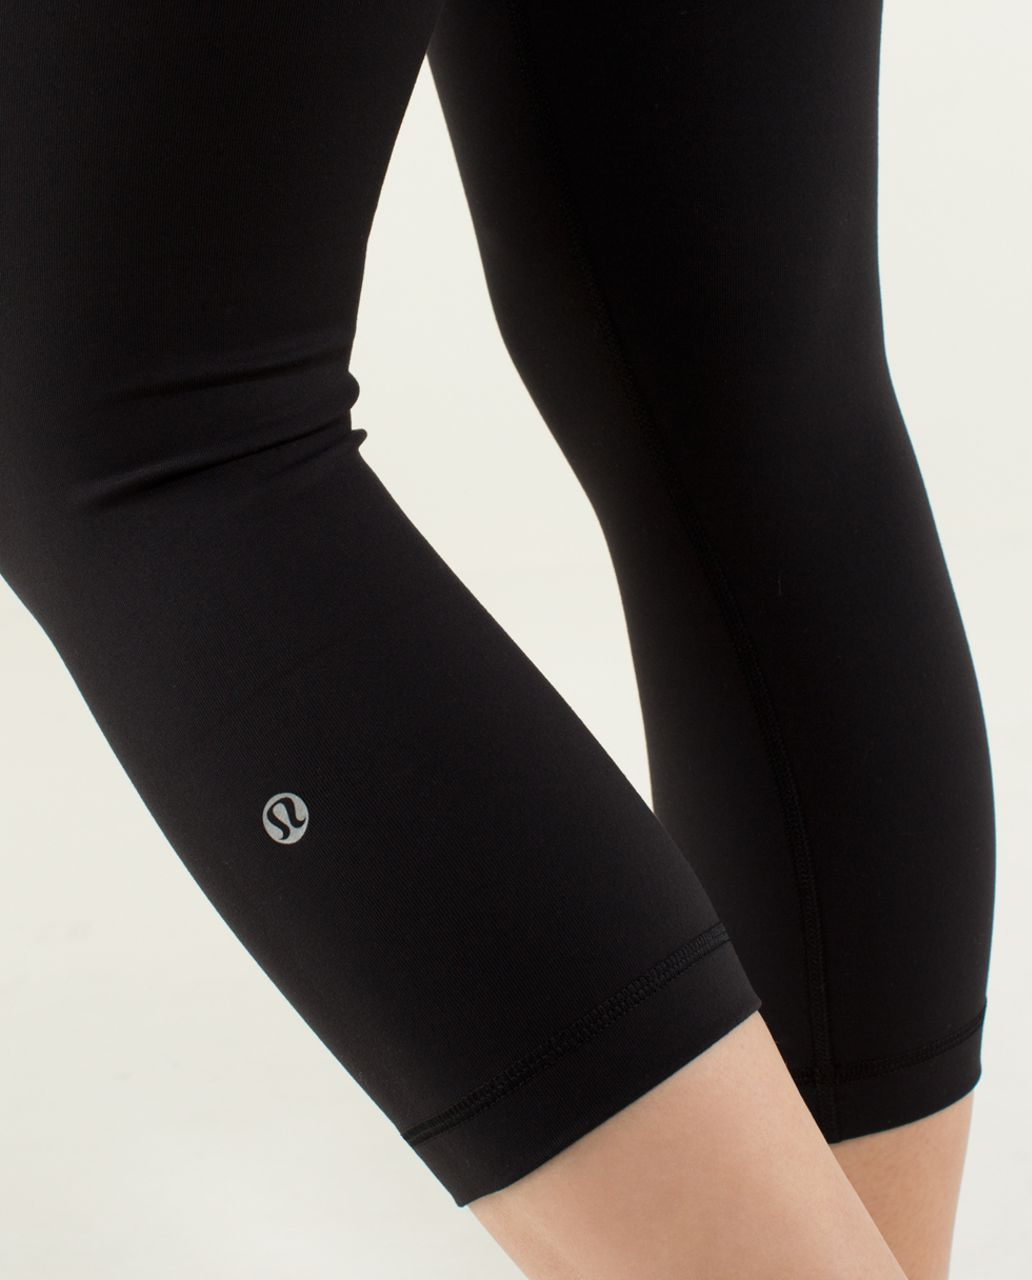 Lululemon Wunder Under Crop *Full-On Luon - Black / Quilt Winter 13-16